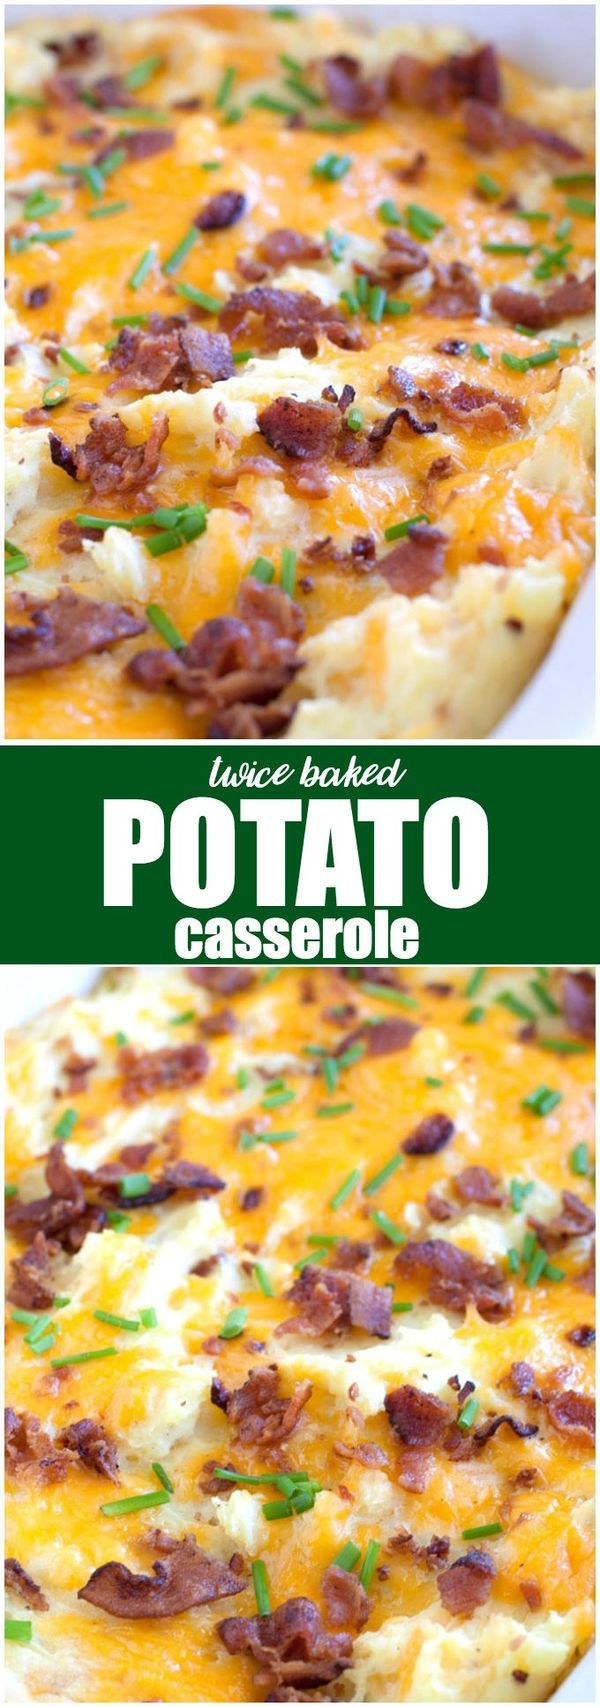 Twice Baked Potato Casserole - Easy, delicious comfort food your family will love! This is a lick your plate clean kind of recipe.